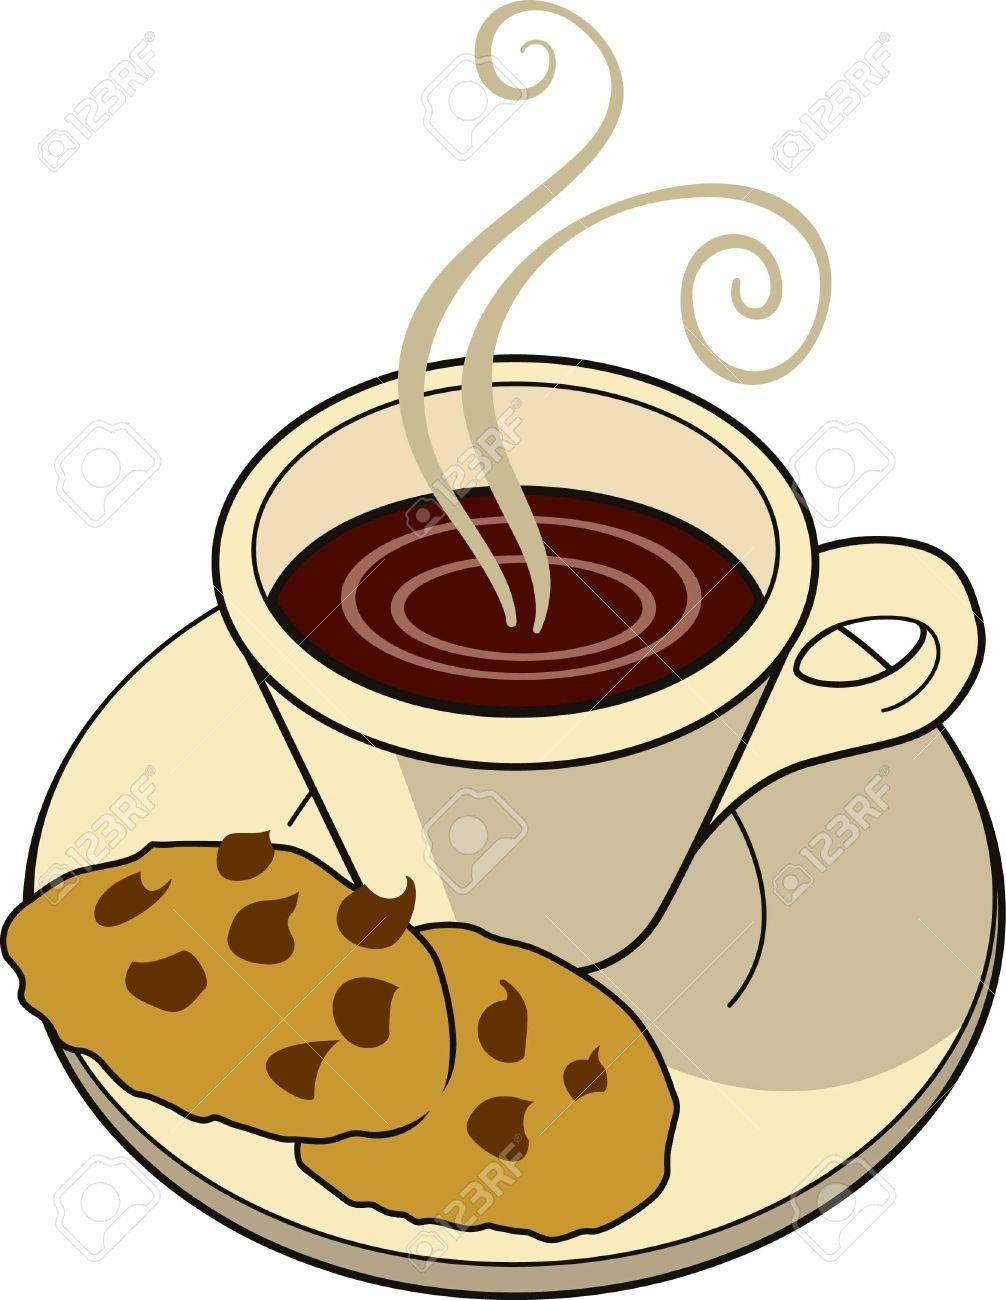 Image result for clip art cookies & coffee